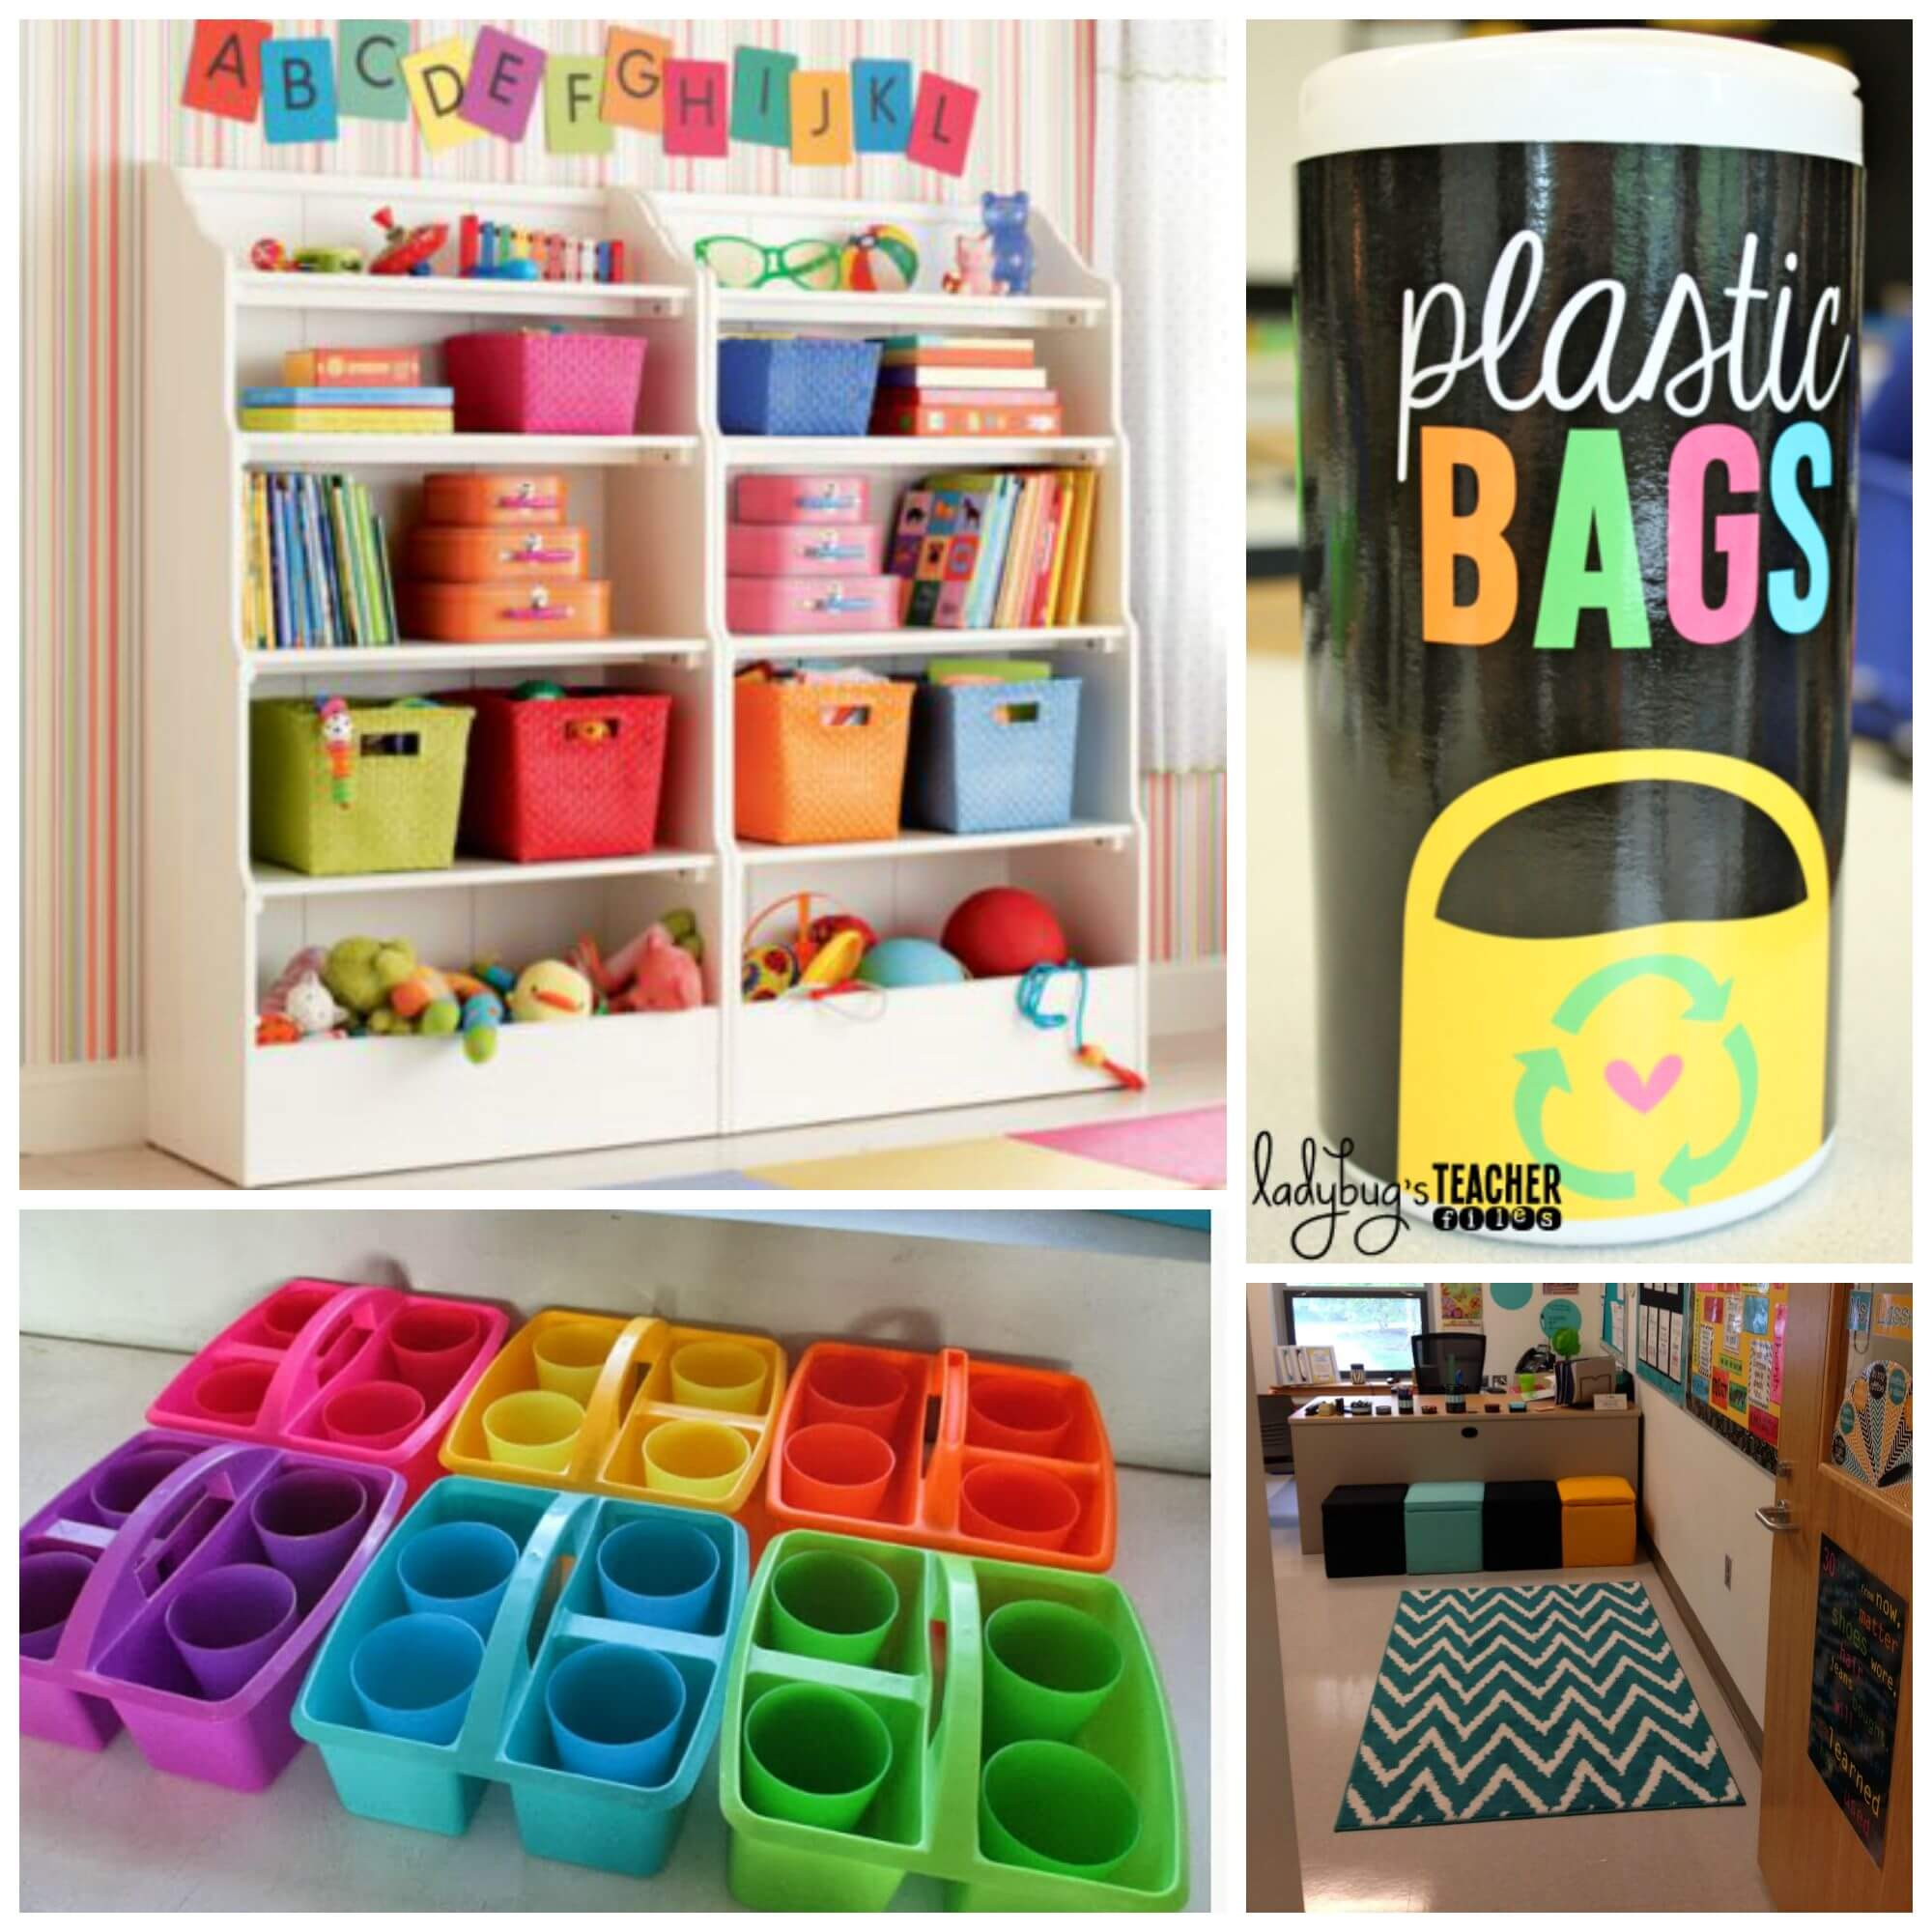 Innovative Ideas For Classroom Teaching ~ Inspiring classroom decoration ideas playdough to plato